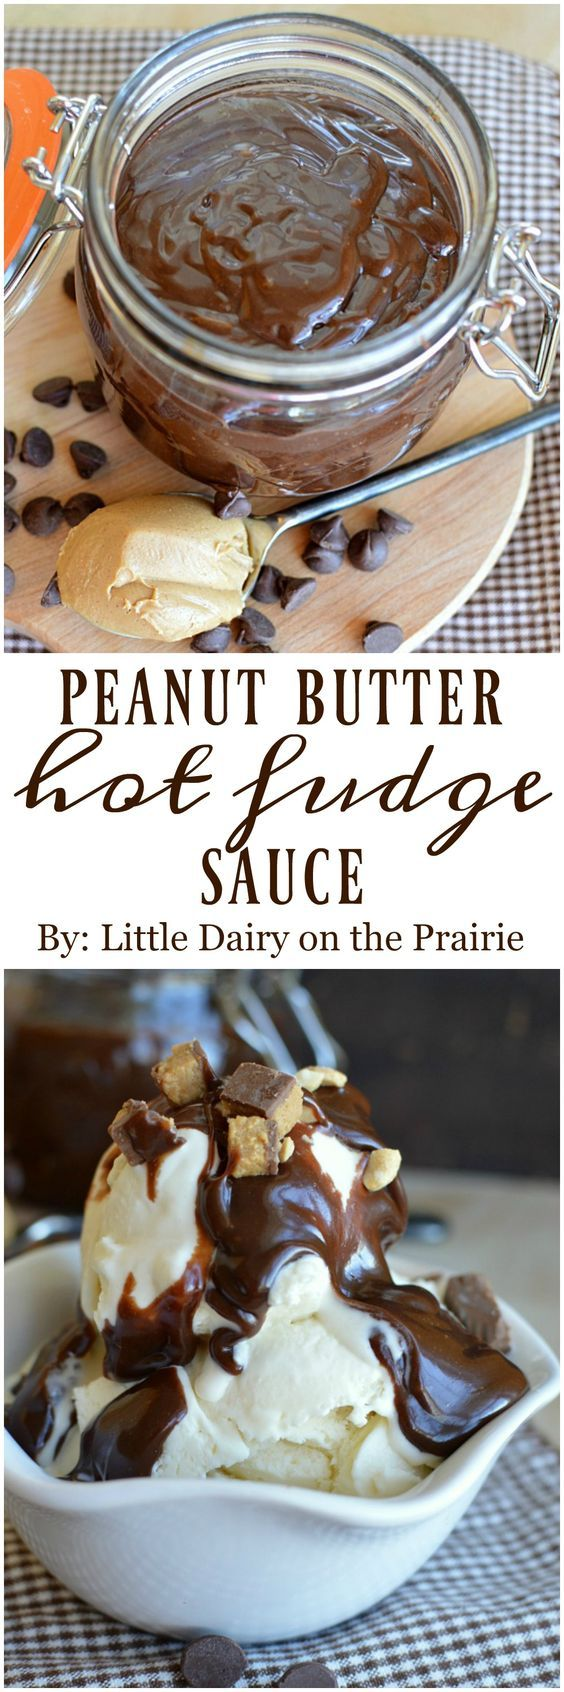 Peanut Butter Hot Fudge Sauce is the reason I eat ice cream! Heck, I won't judge you if you just grab a spoon eat it straight from the jar!